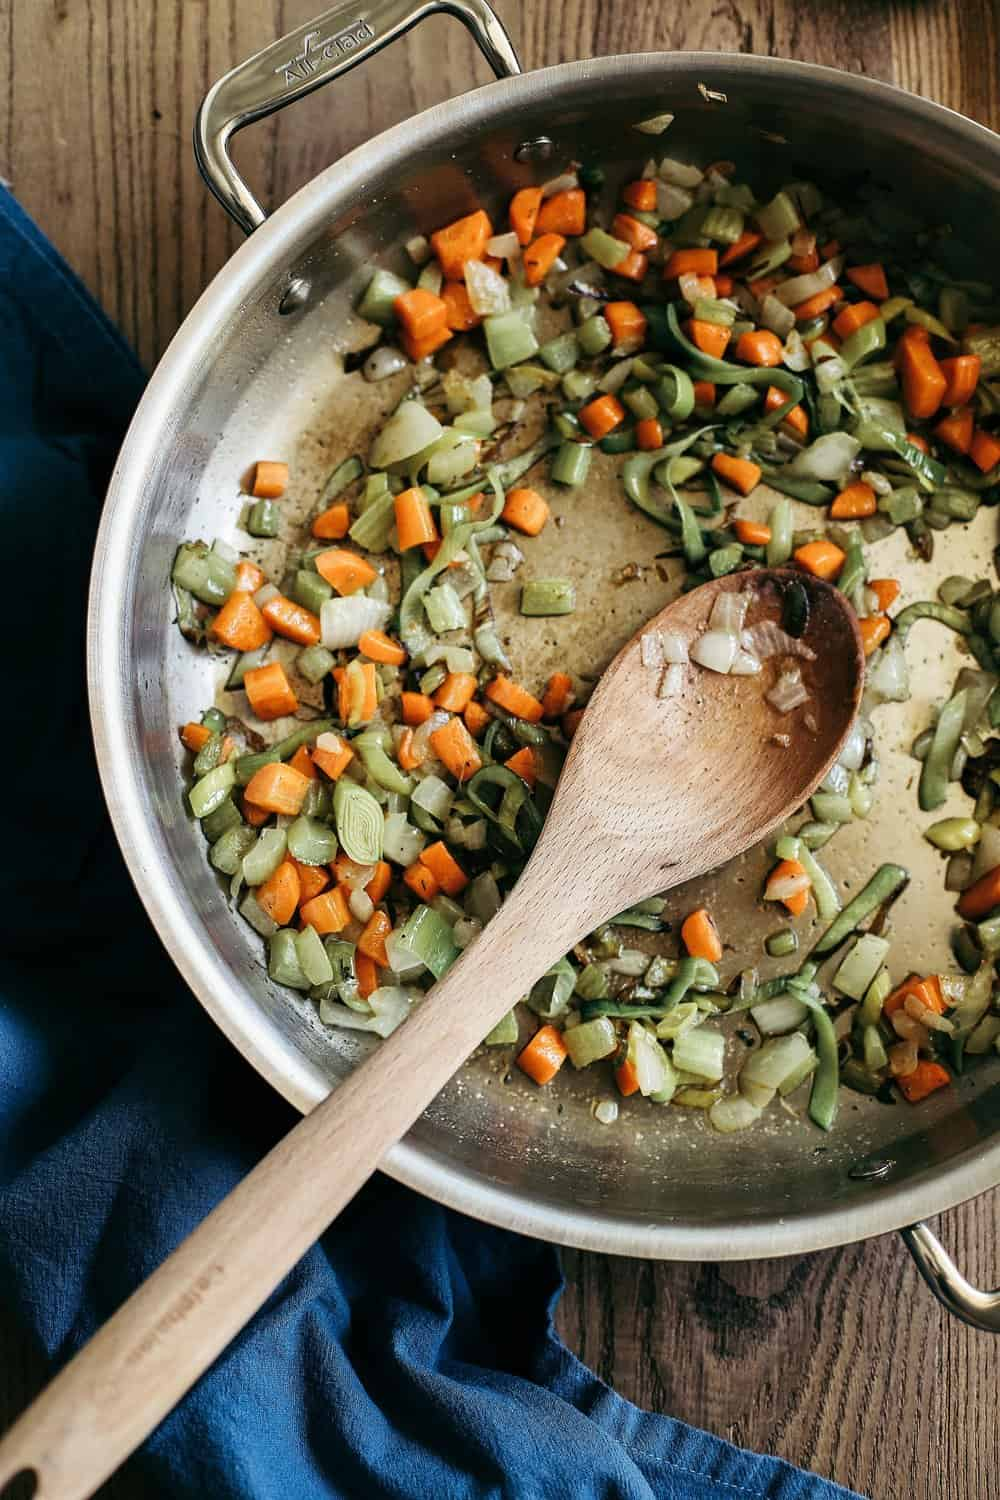 Diced carrots, celery, leeks, and onions in a saute pan.